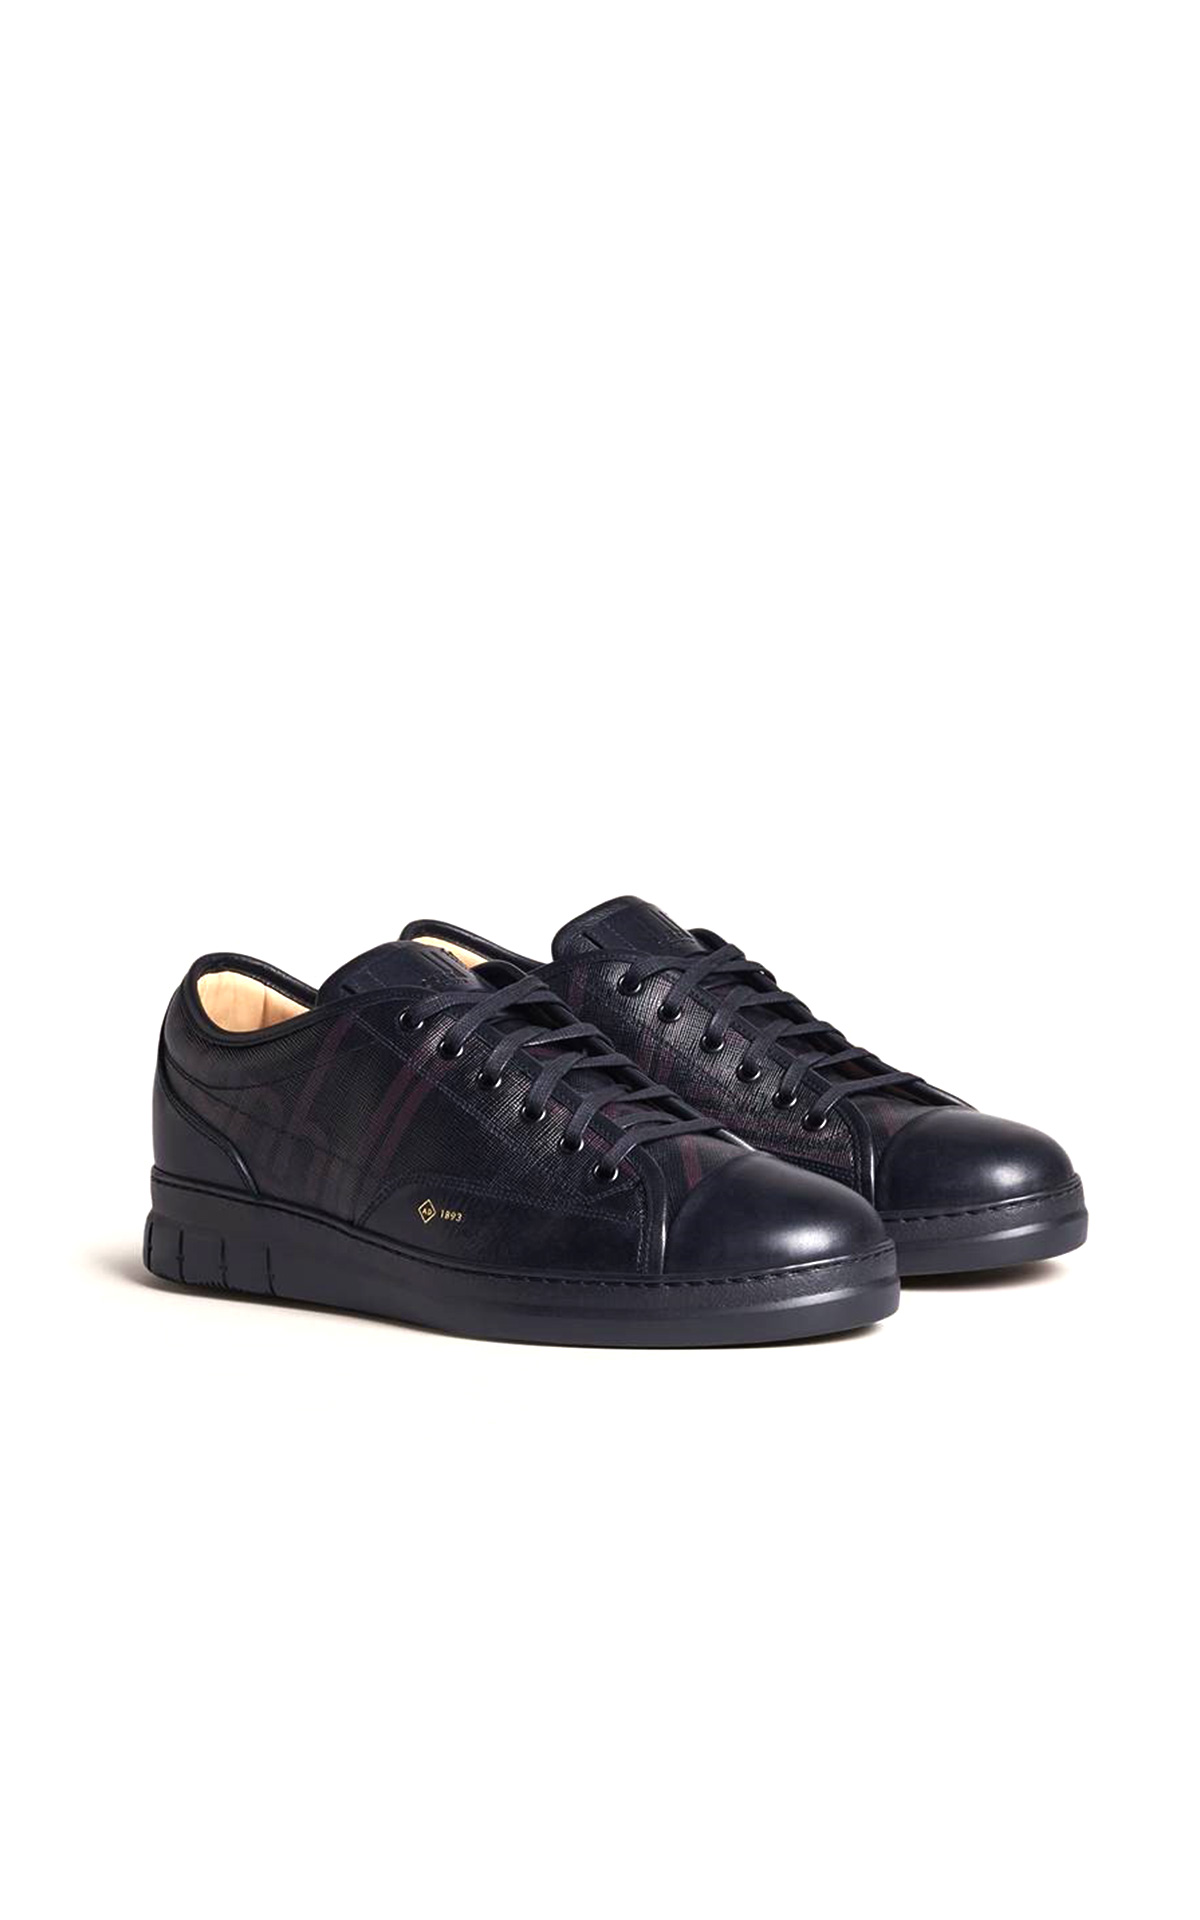 La Vallée Village dunhill sneakers